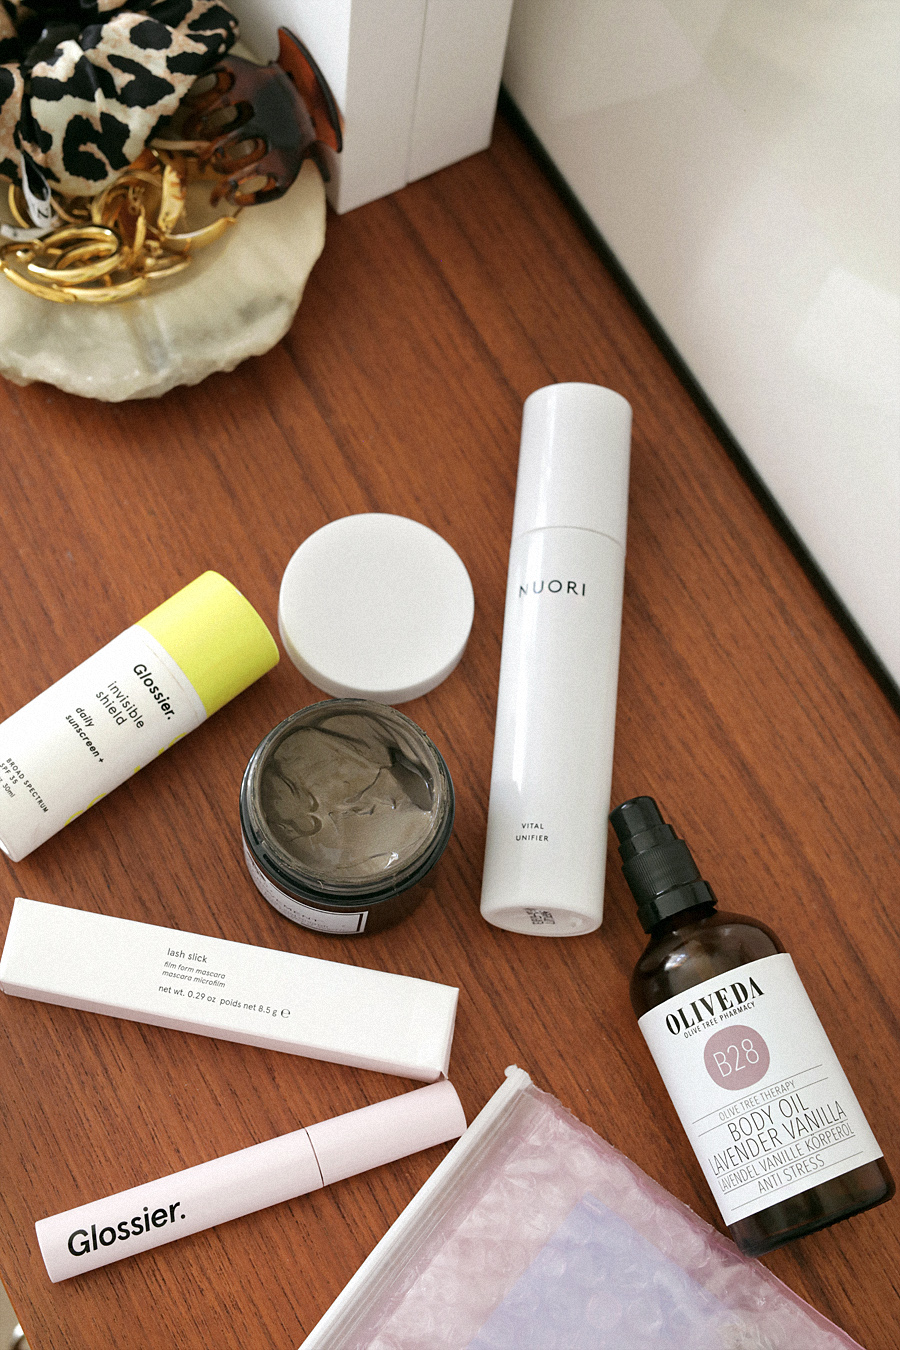 Favorites Video: Glossier Invisible Shield Sunscreen SPF35, Origins Clear Improvement Charcoal Honey Mask, Nuori Vital Unifier, Oliveda Body Oil Lavender Vanilla, Glossier Lash Slick Mascara